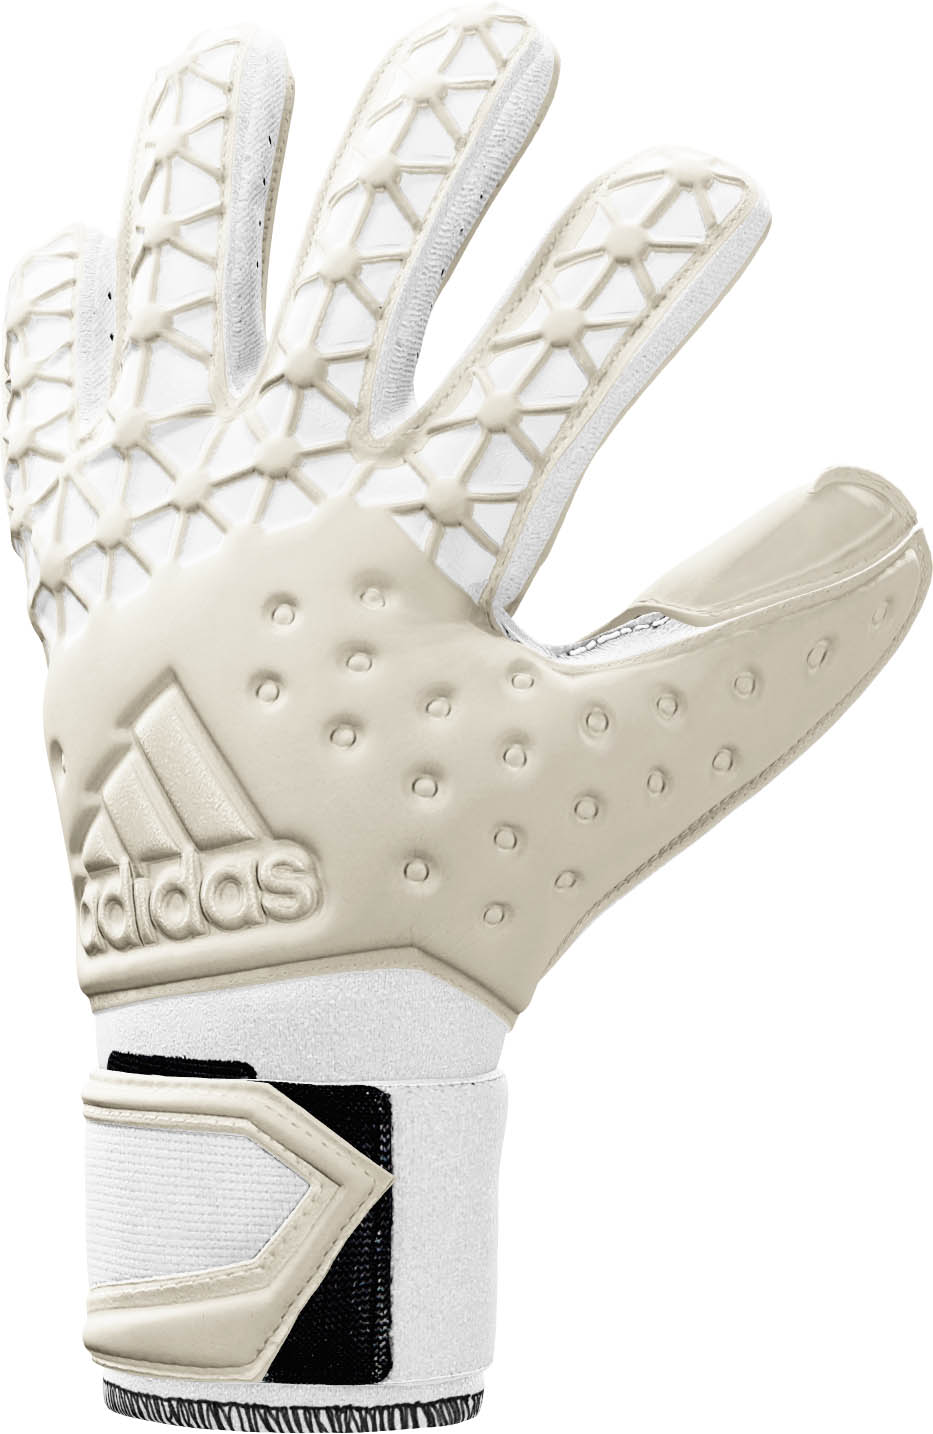 adidas Unveil The ACE15 Zones Pro Goalkeeper Glove | RWD |Goalkeeper Gloves Adidas 2015